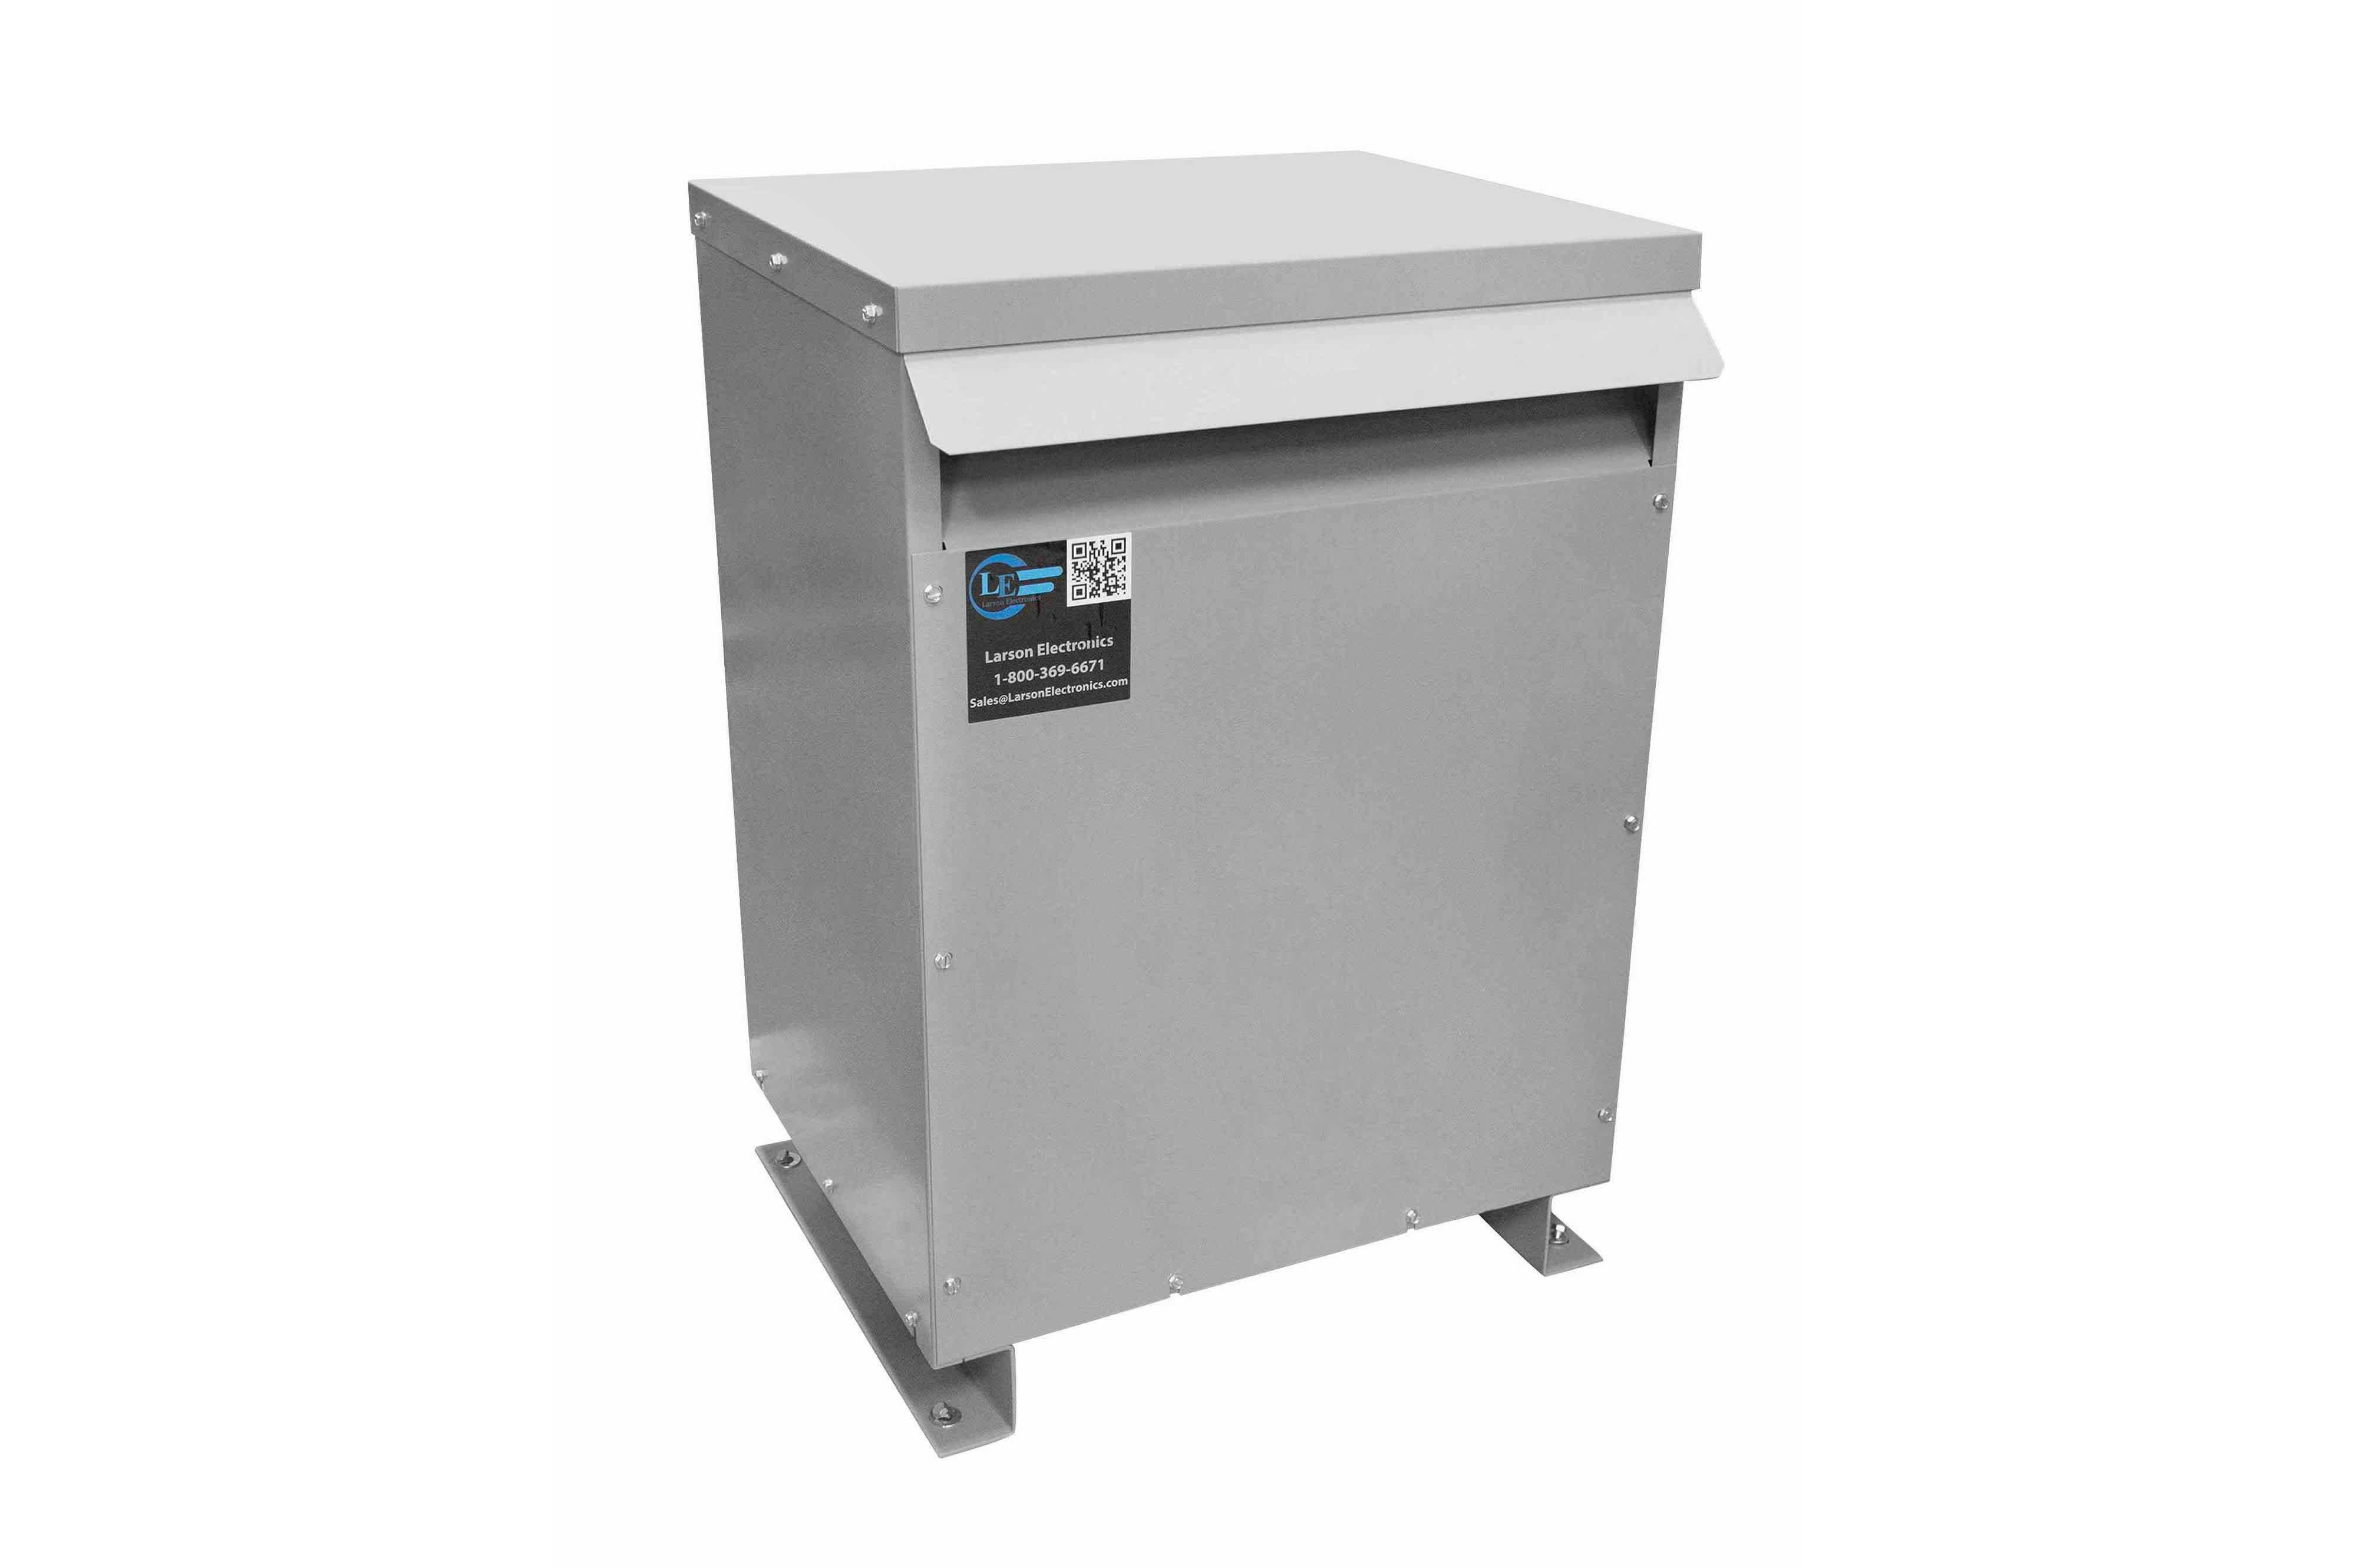 900 kVA 3PH Isolation Transformer, 575V Wye Primary, 240V Delta Secondary, N3R, Ventilated, 60 Hz